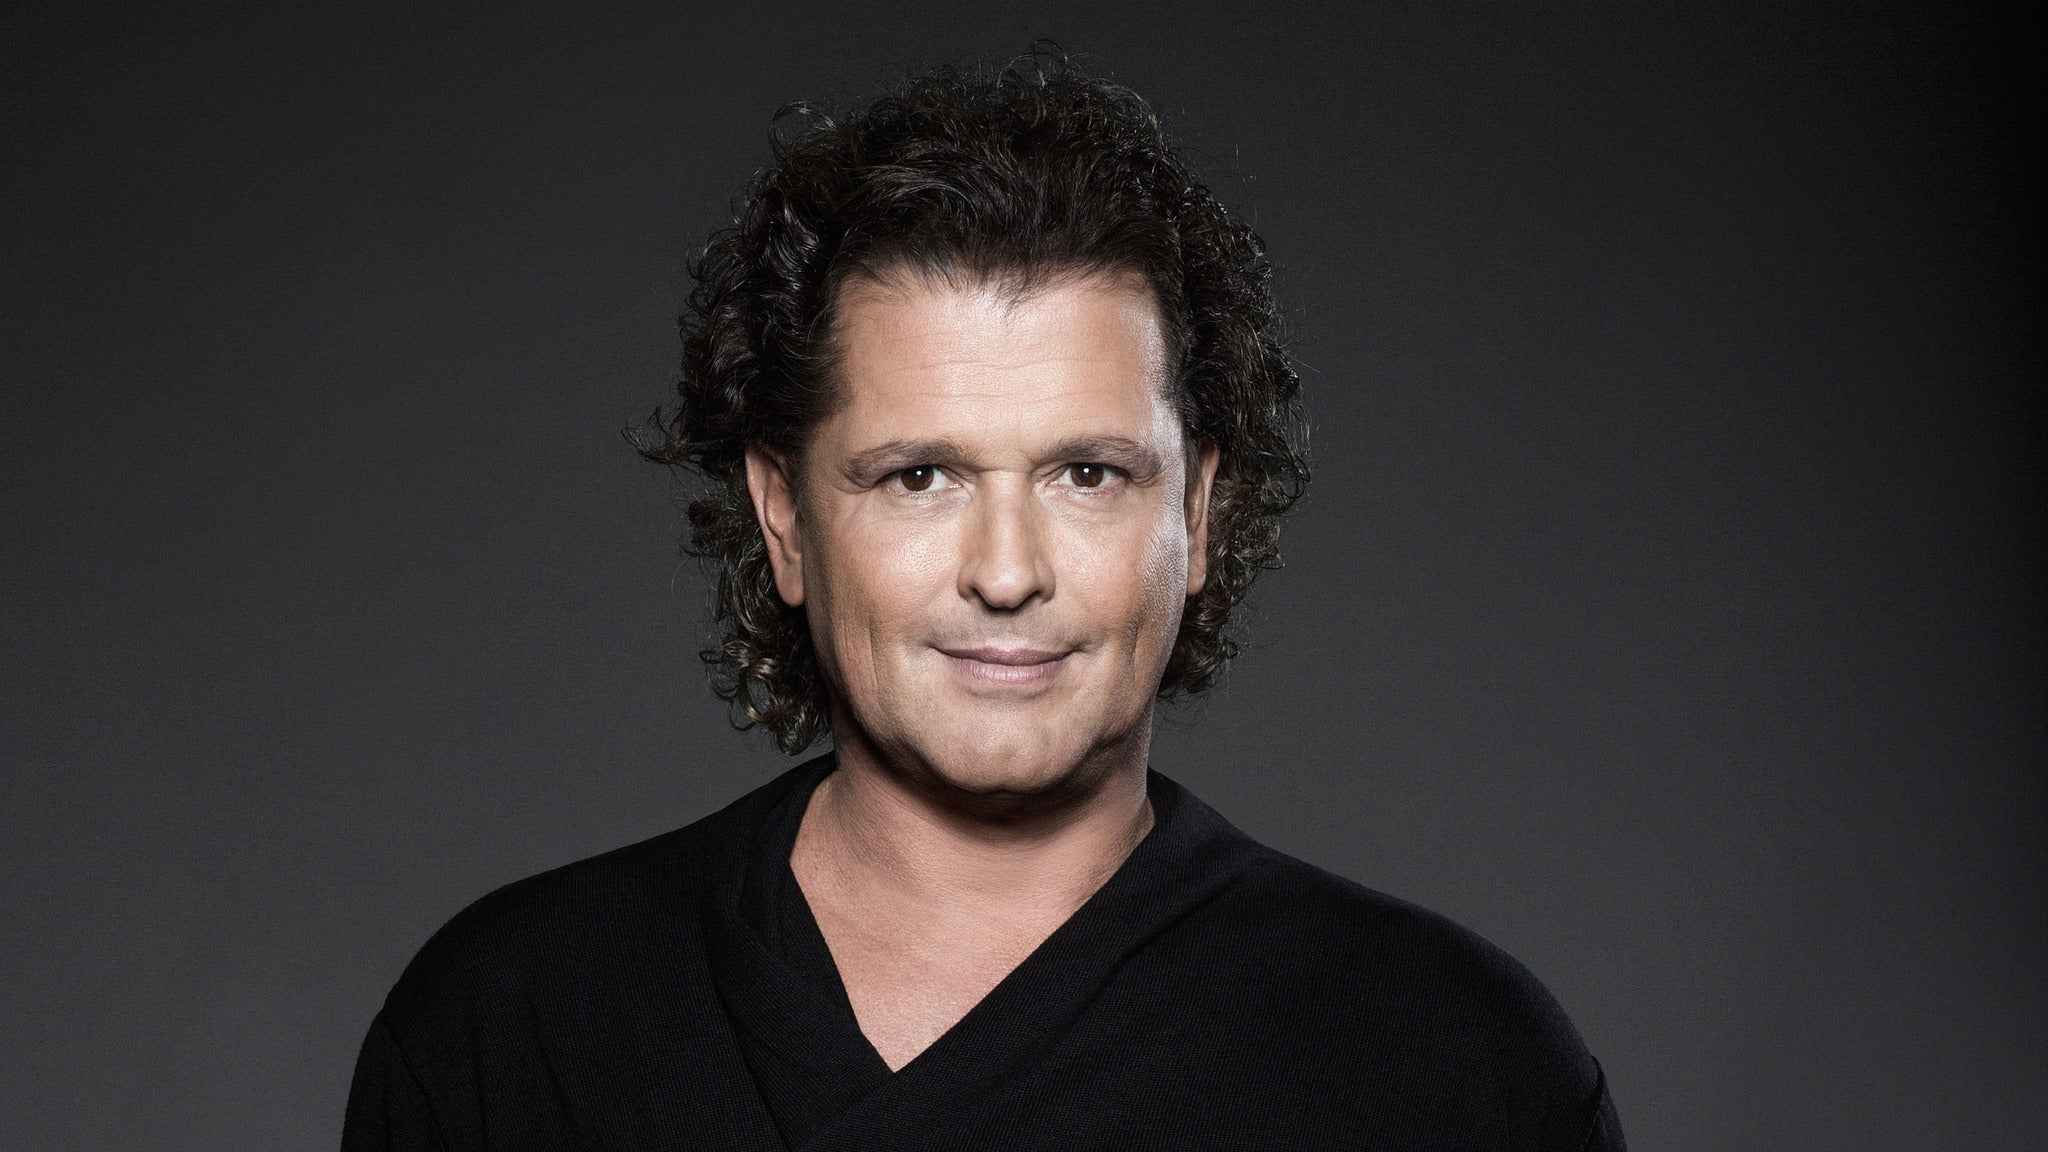 Carlos Vives at The Forum